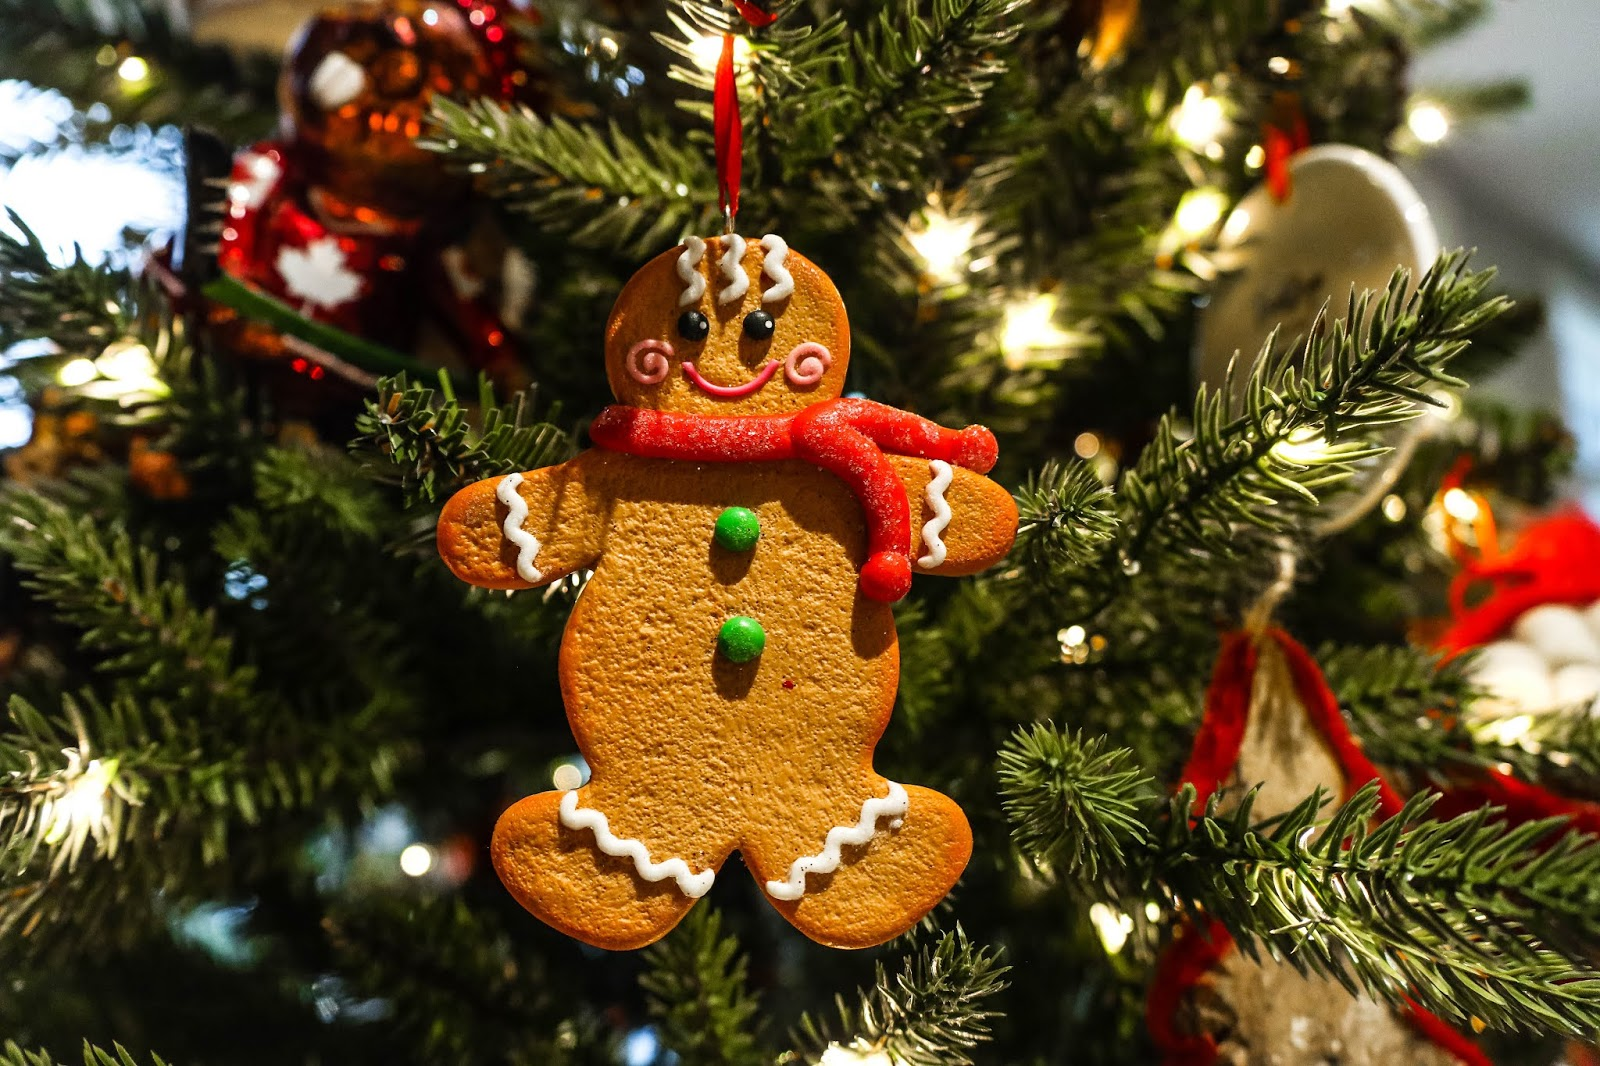 Canadian Tire Christmas Tree Decorations Ornaments Gingerbread